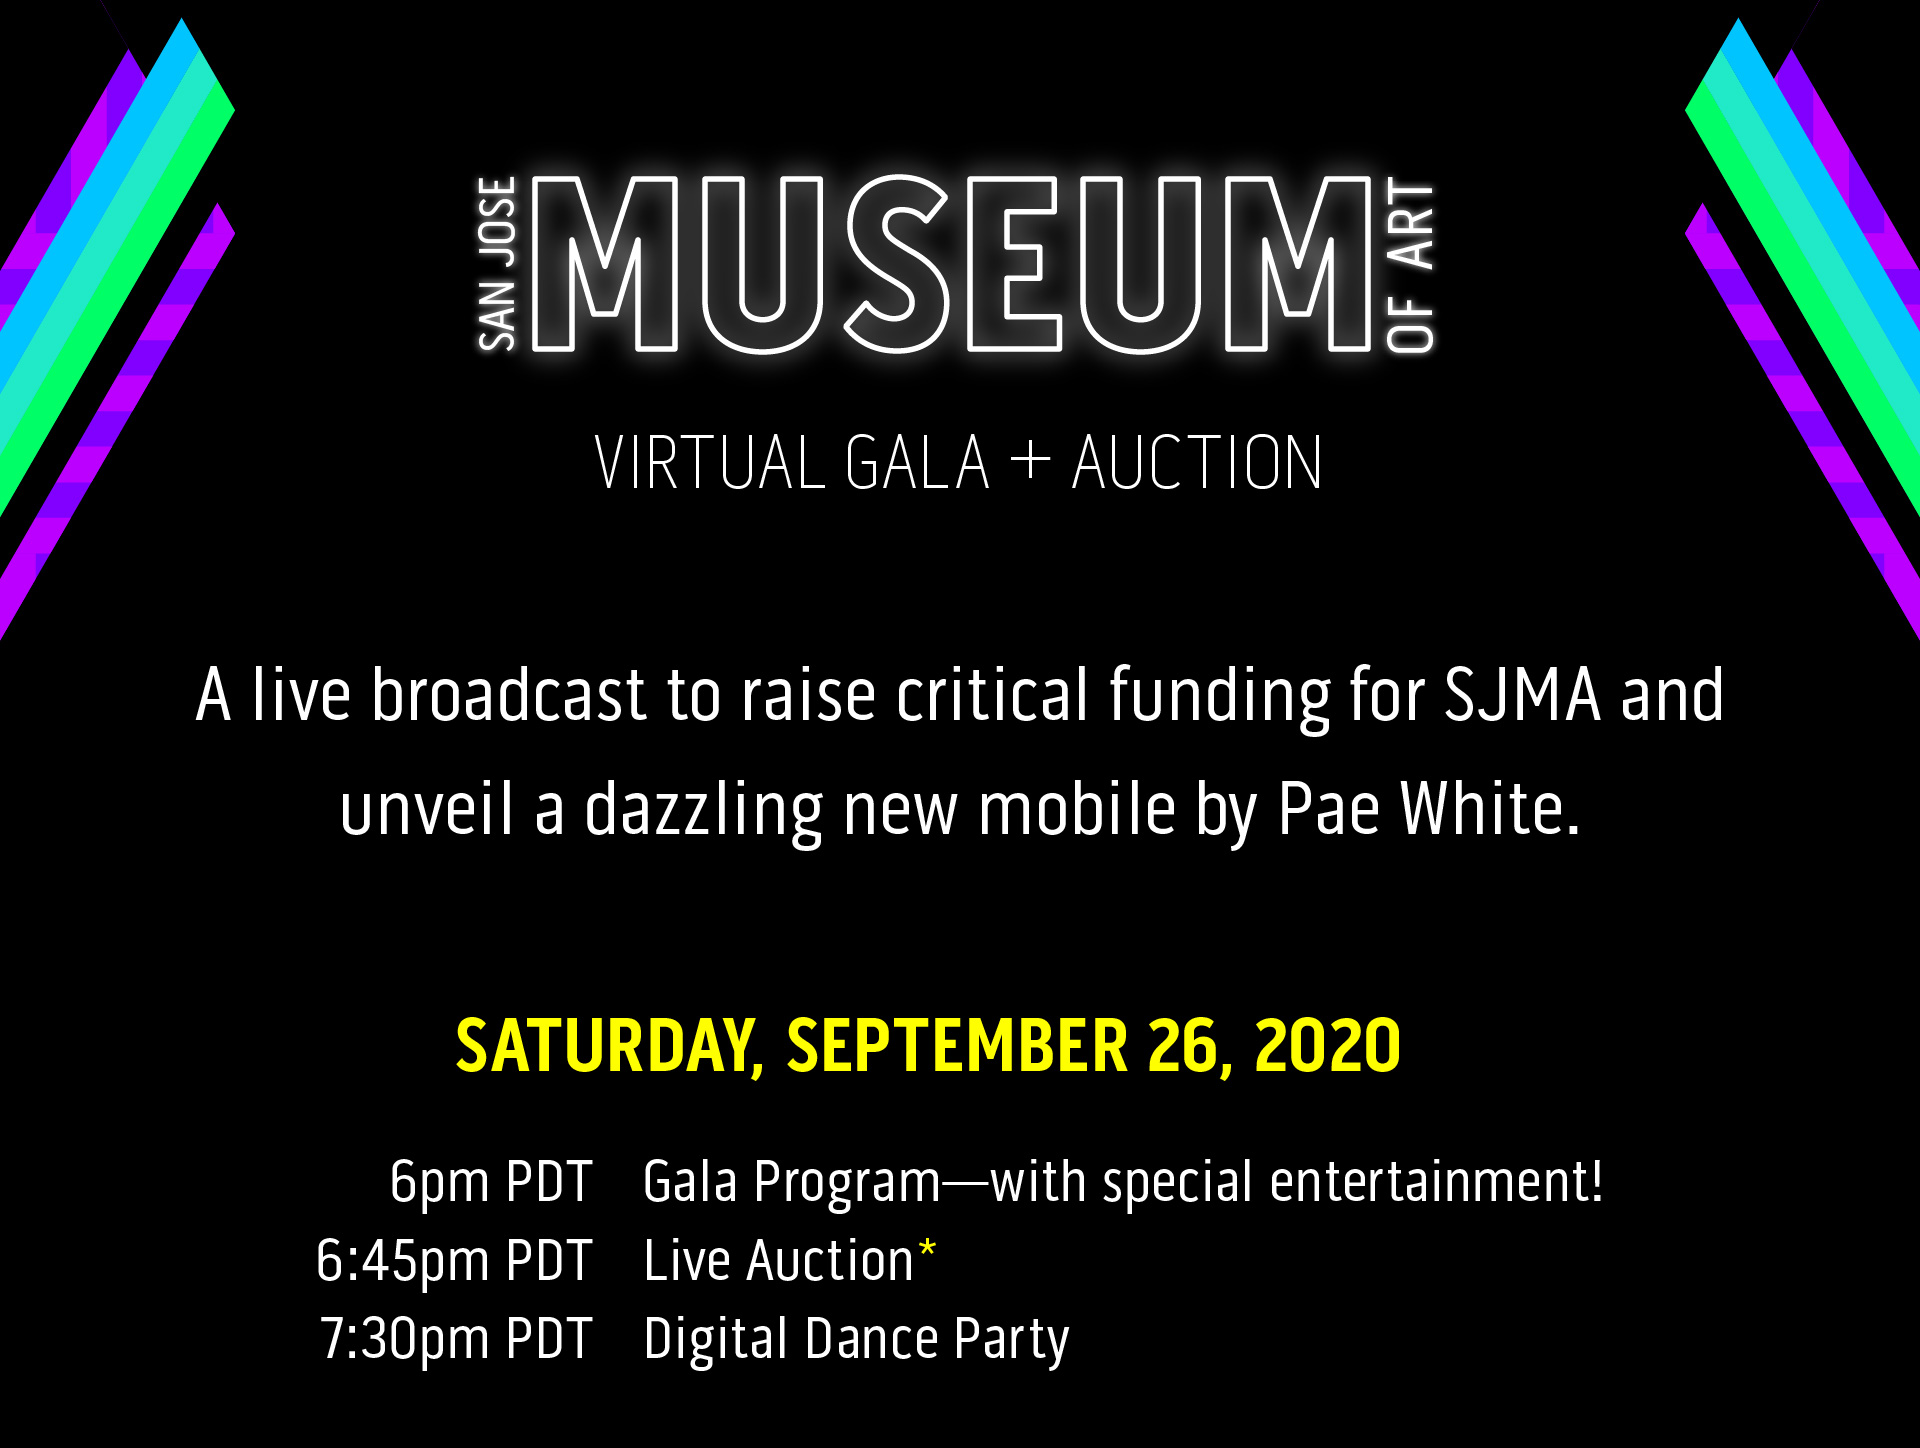 A live broadcast to raise critical funding for SJMA and unveil a dazzling new mobile by Pae White.